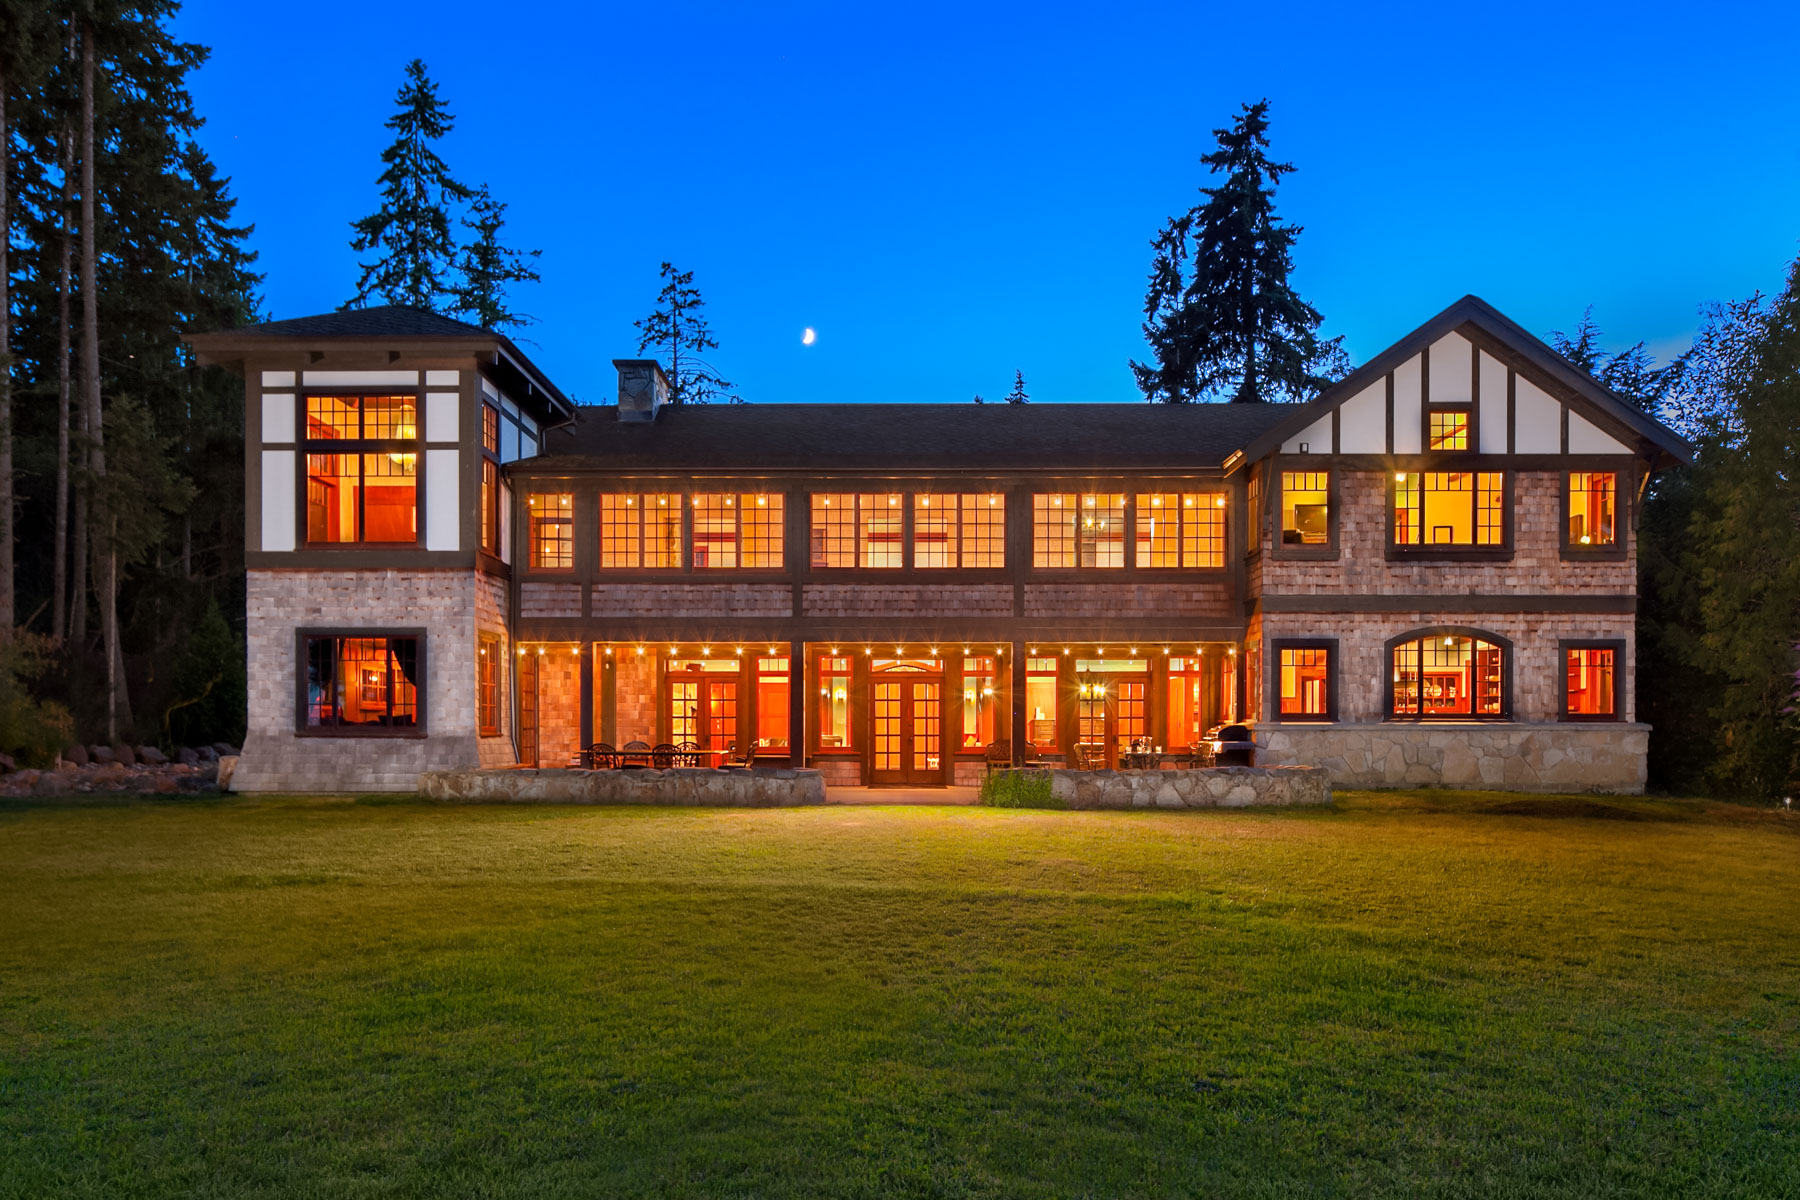 Casa Unifamiliar por un Venta en The Lodge at Blakley Harbor 10254 NE Country Club Rd Bainbridge Island, Washington 98110 Estados Unidos